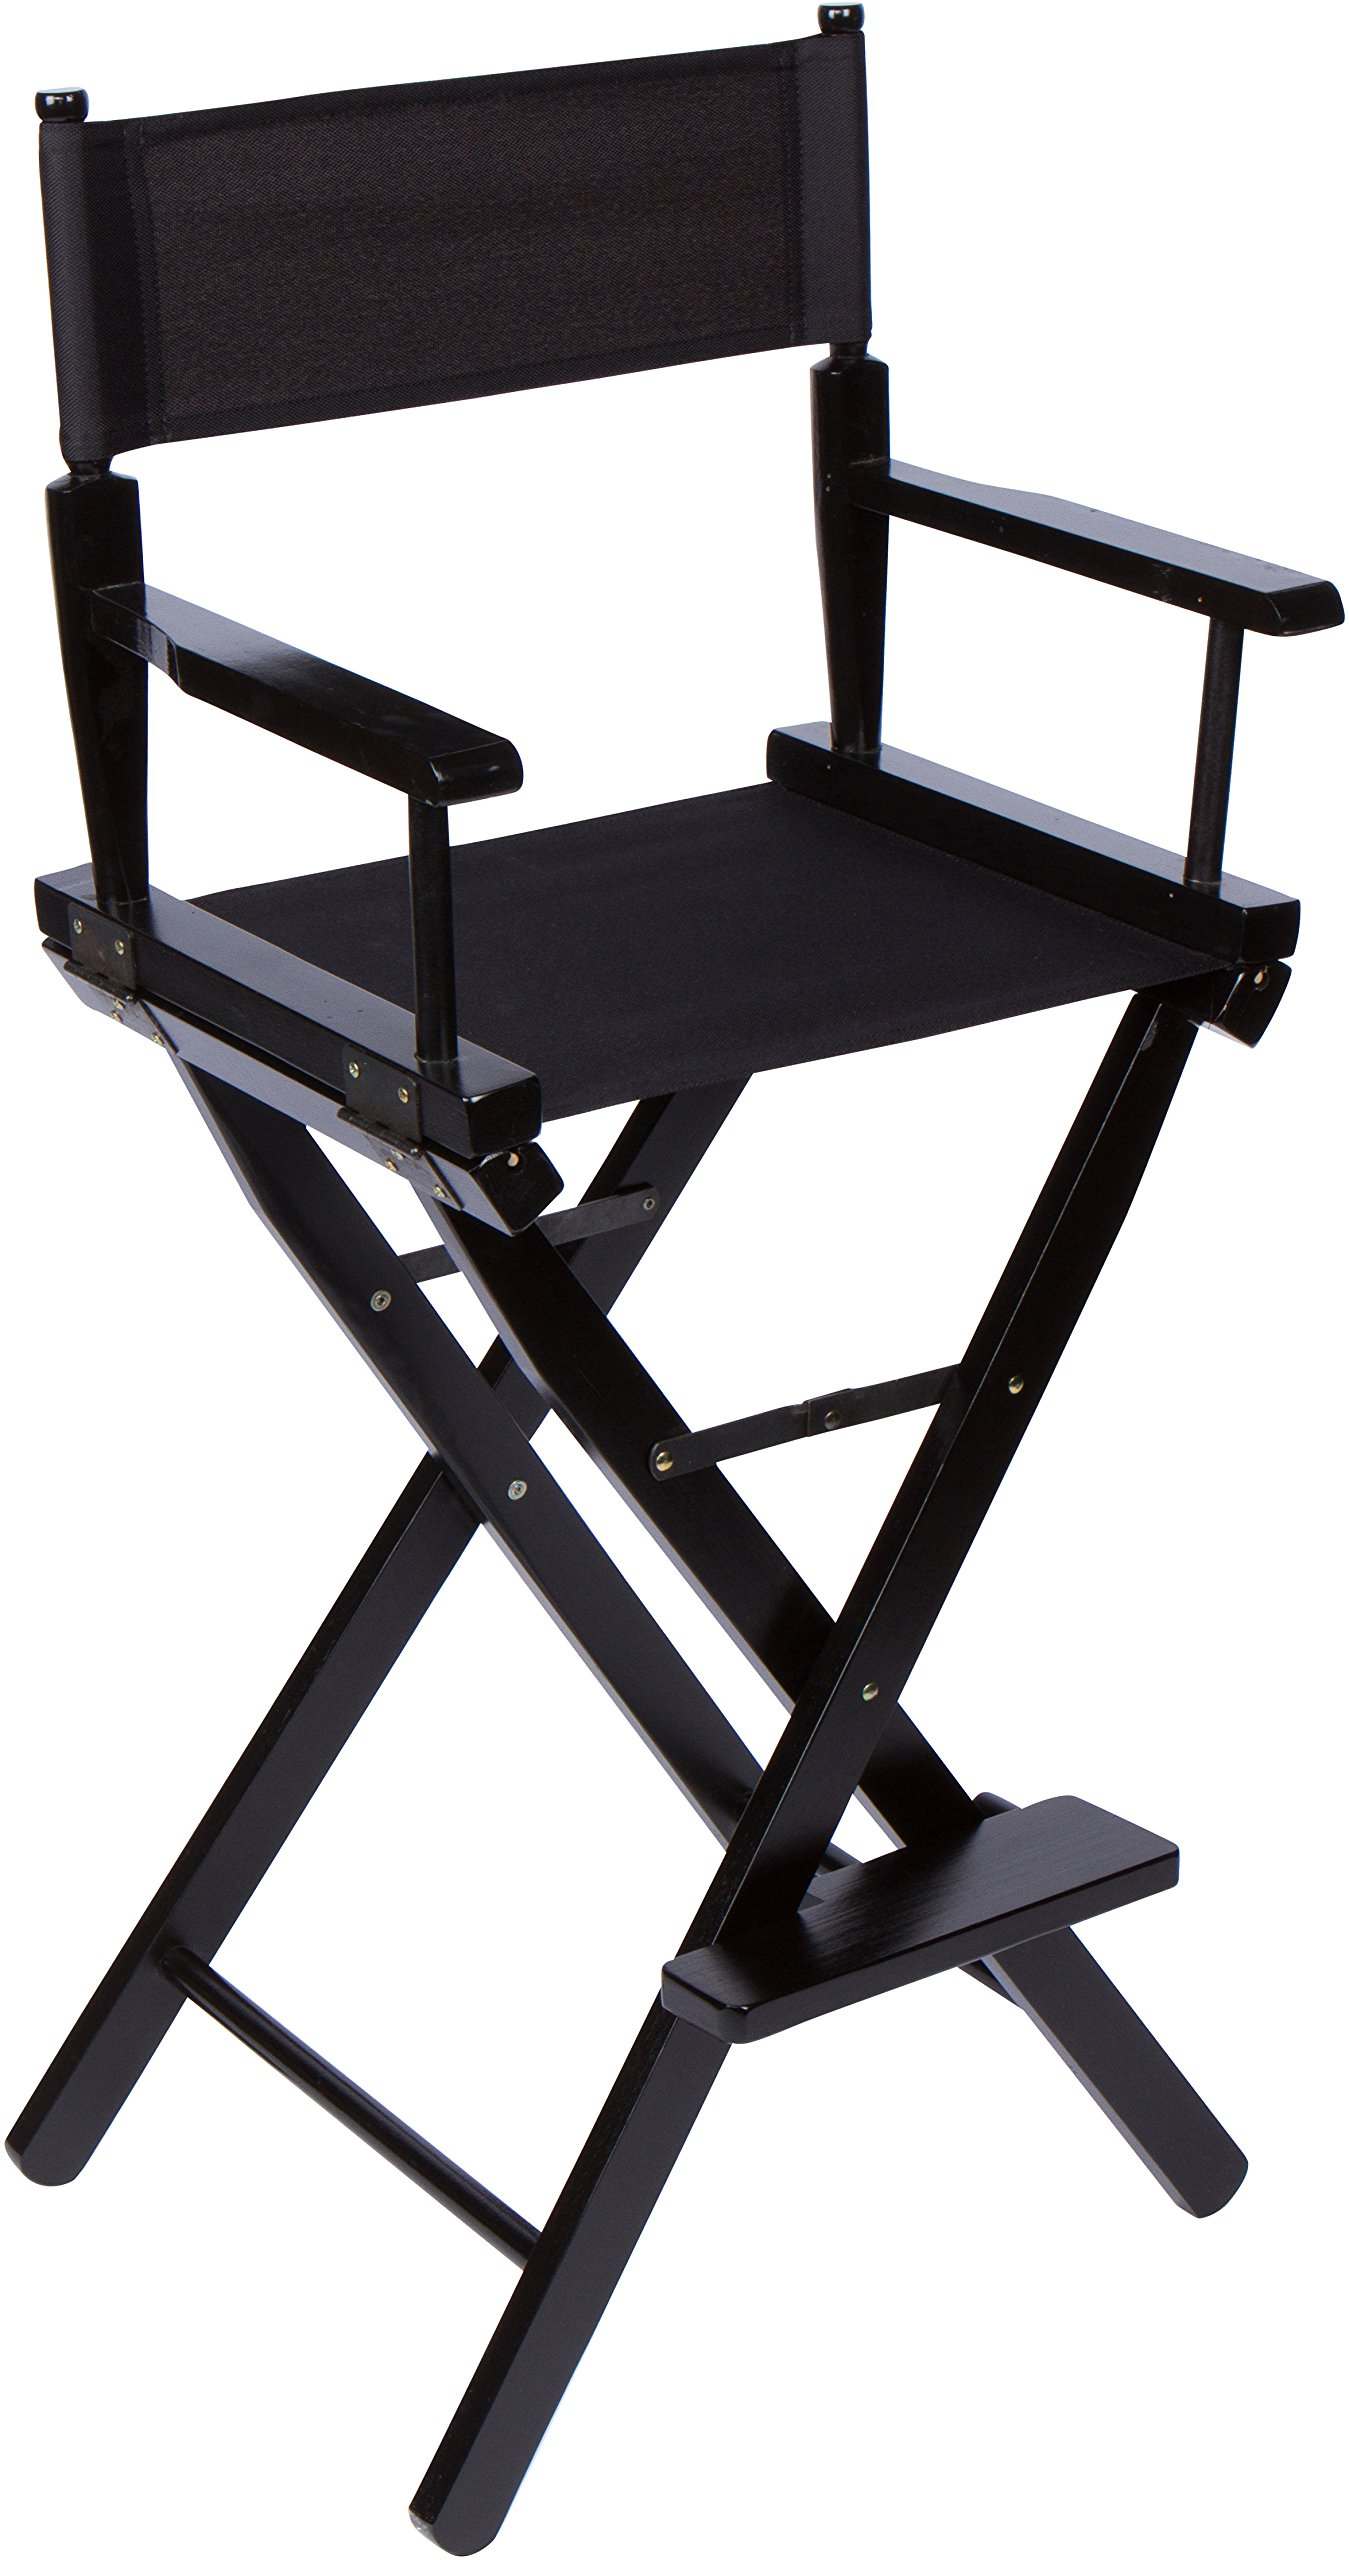 30'' Bar Height Director's Chair - Black Wood - By Trademark Innovations (Black)